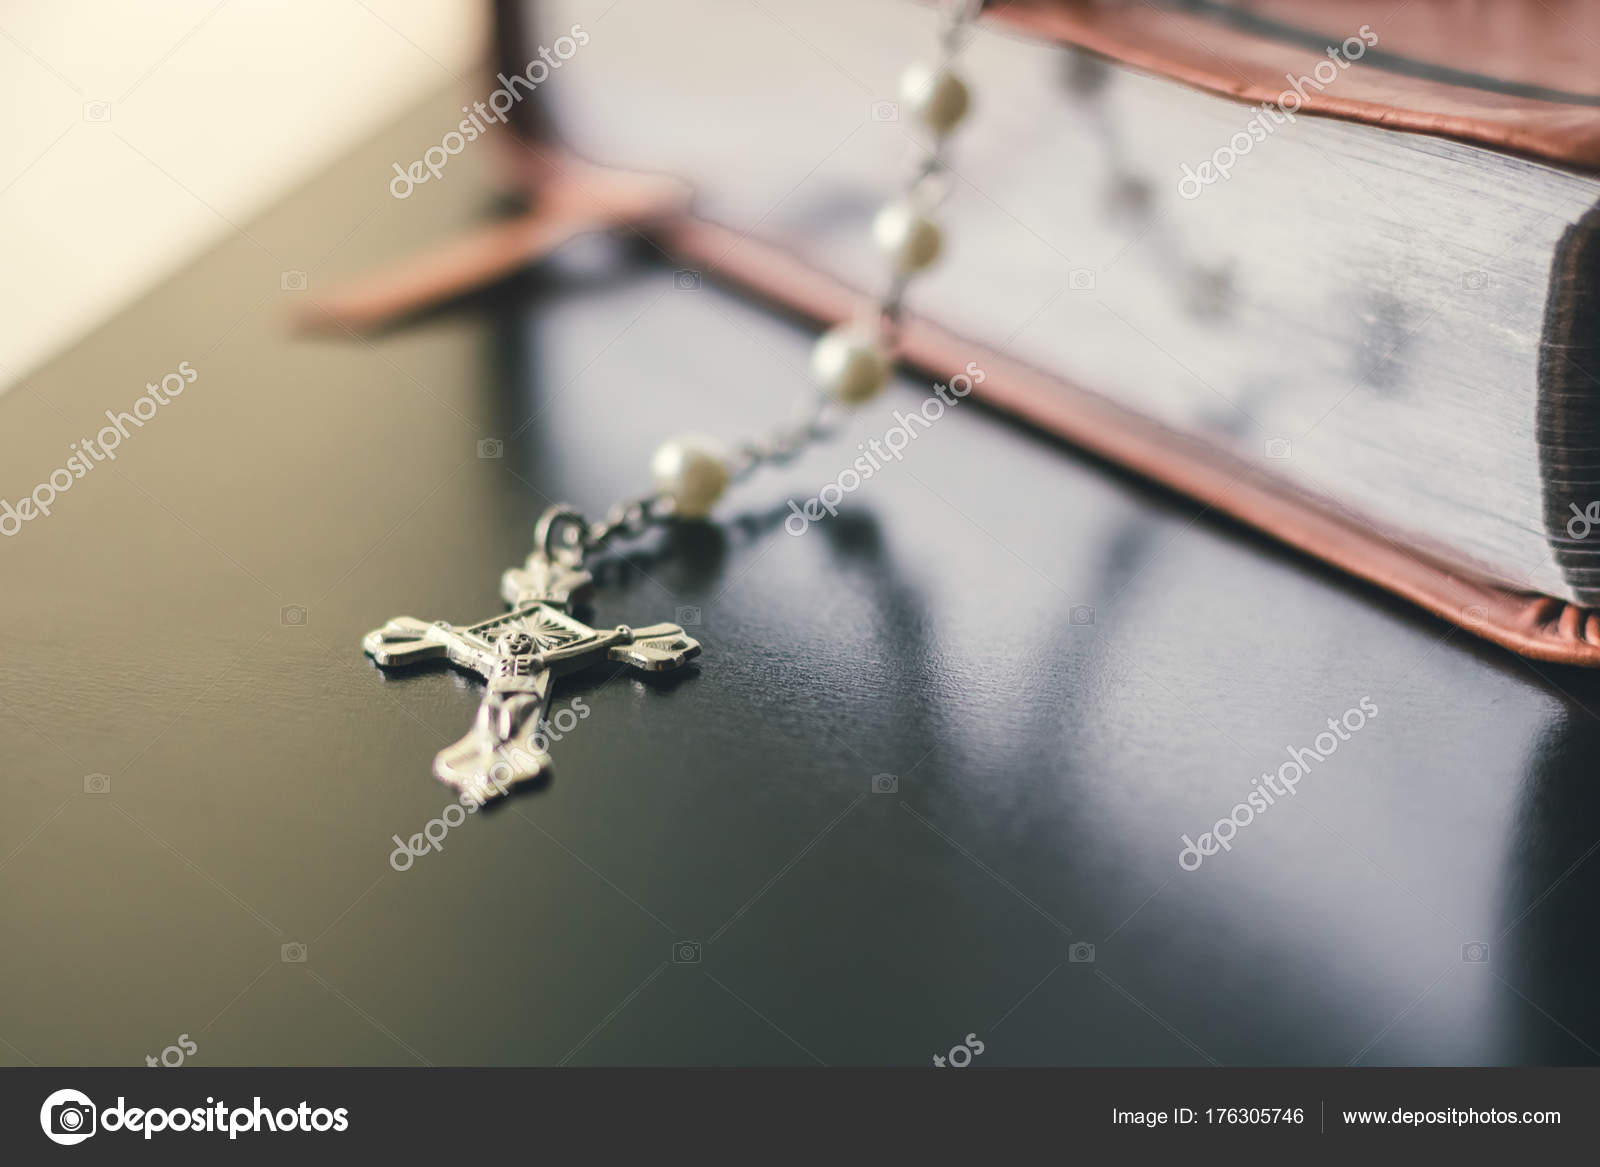 A Closed Brown Leather Bible Is Set On A Black Shiny And Reflective Table  Top. Hanging Over The Bible Is A Silver And Pearl Rosary Necklace. The  Crucifix ...